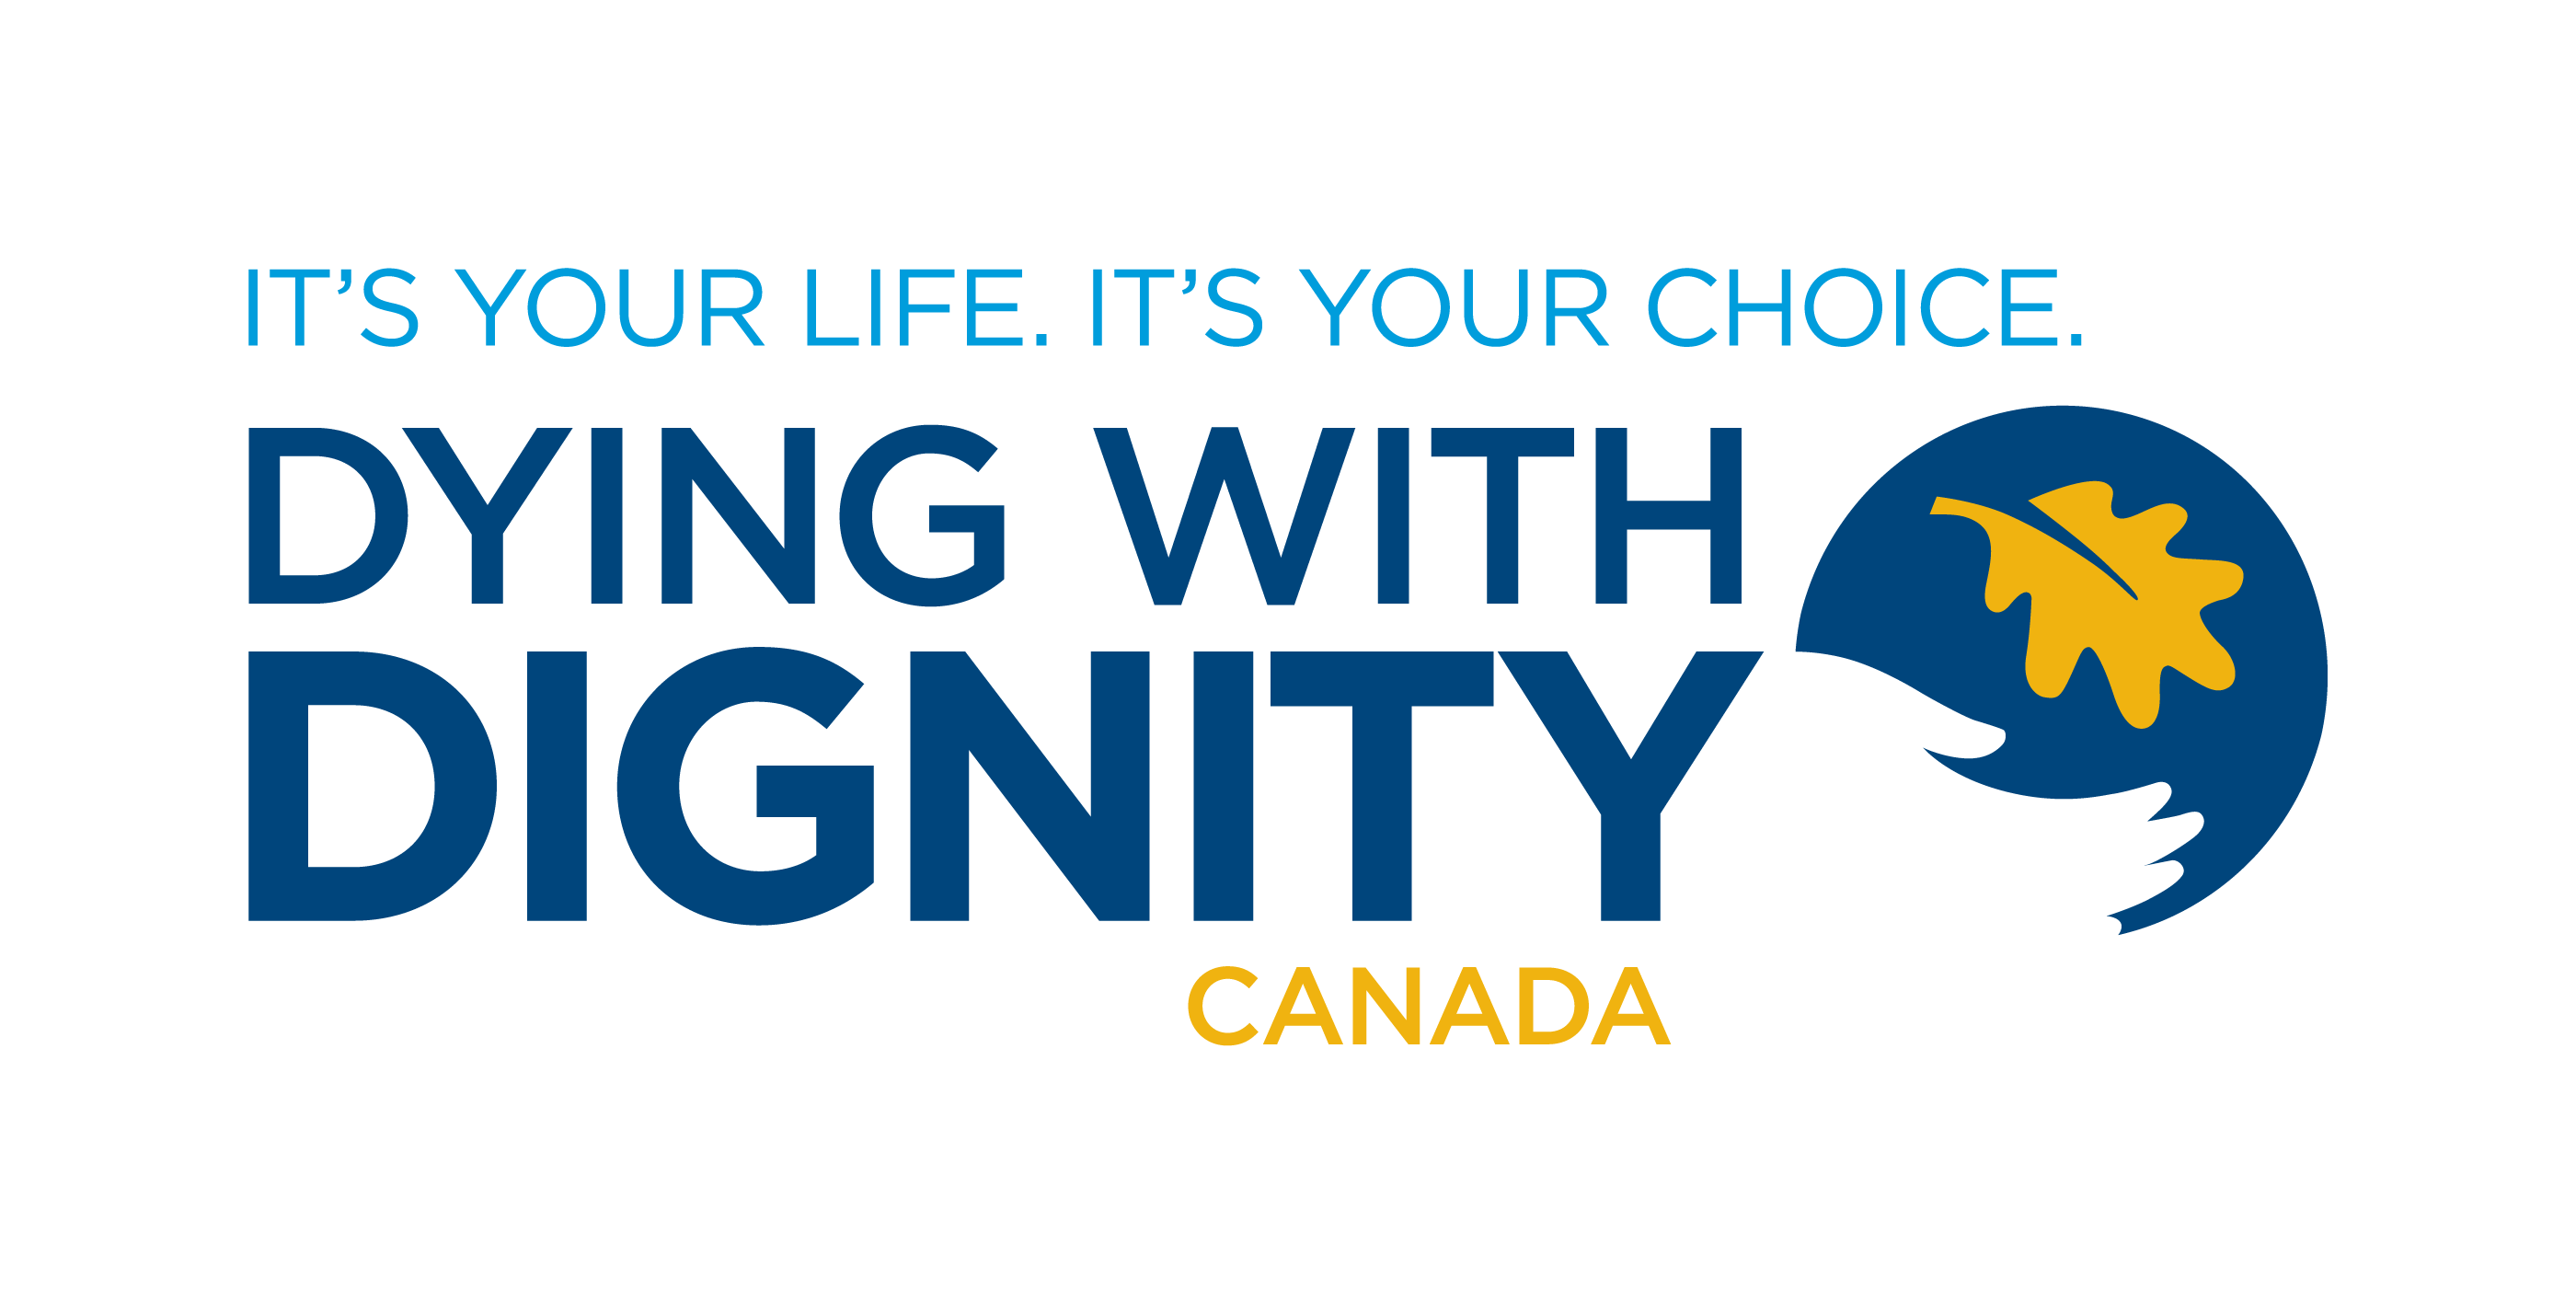 Dying With Dignity Canada